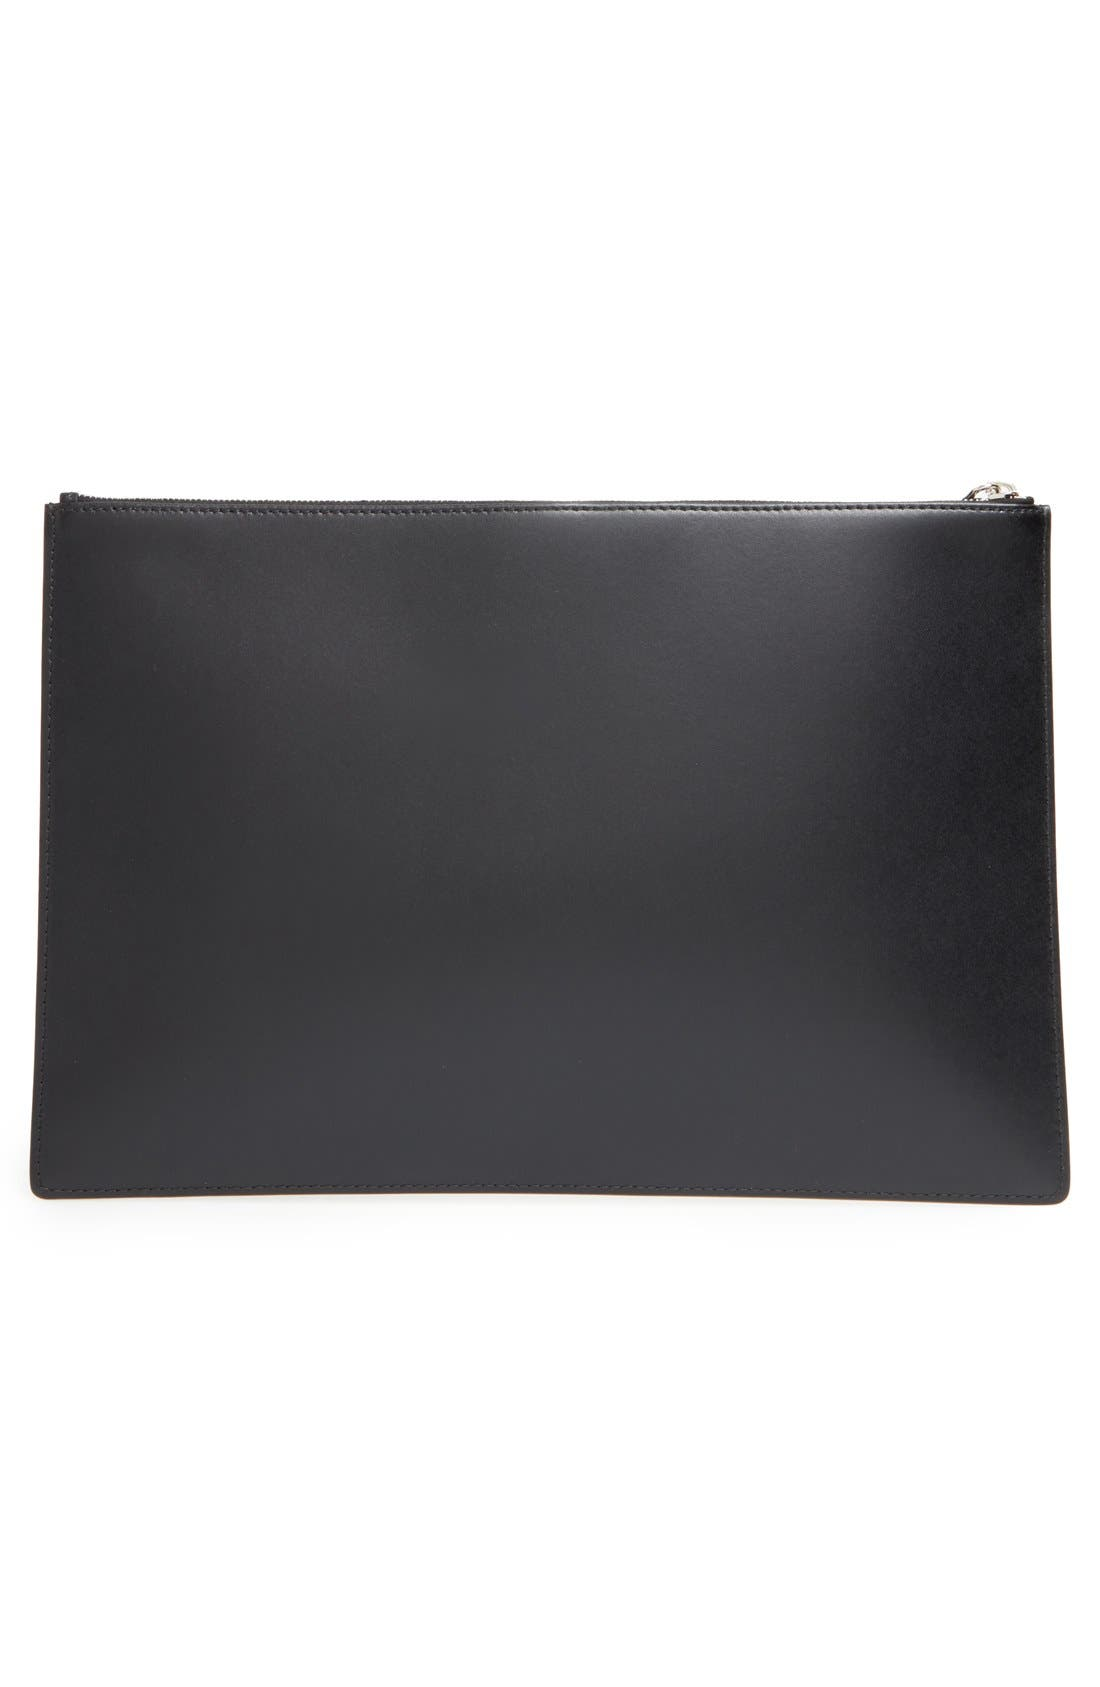 GIVENCHY, 'Large - I Feel Love' Calfskin Leather Pouch, Alternate thumbnail 6, color, 001